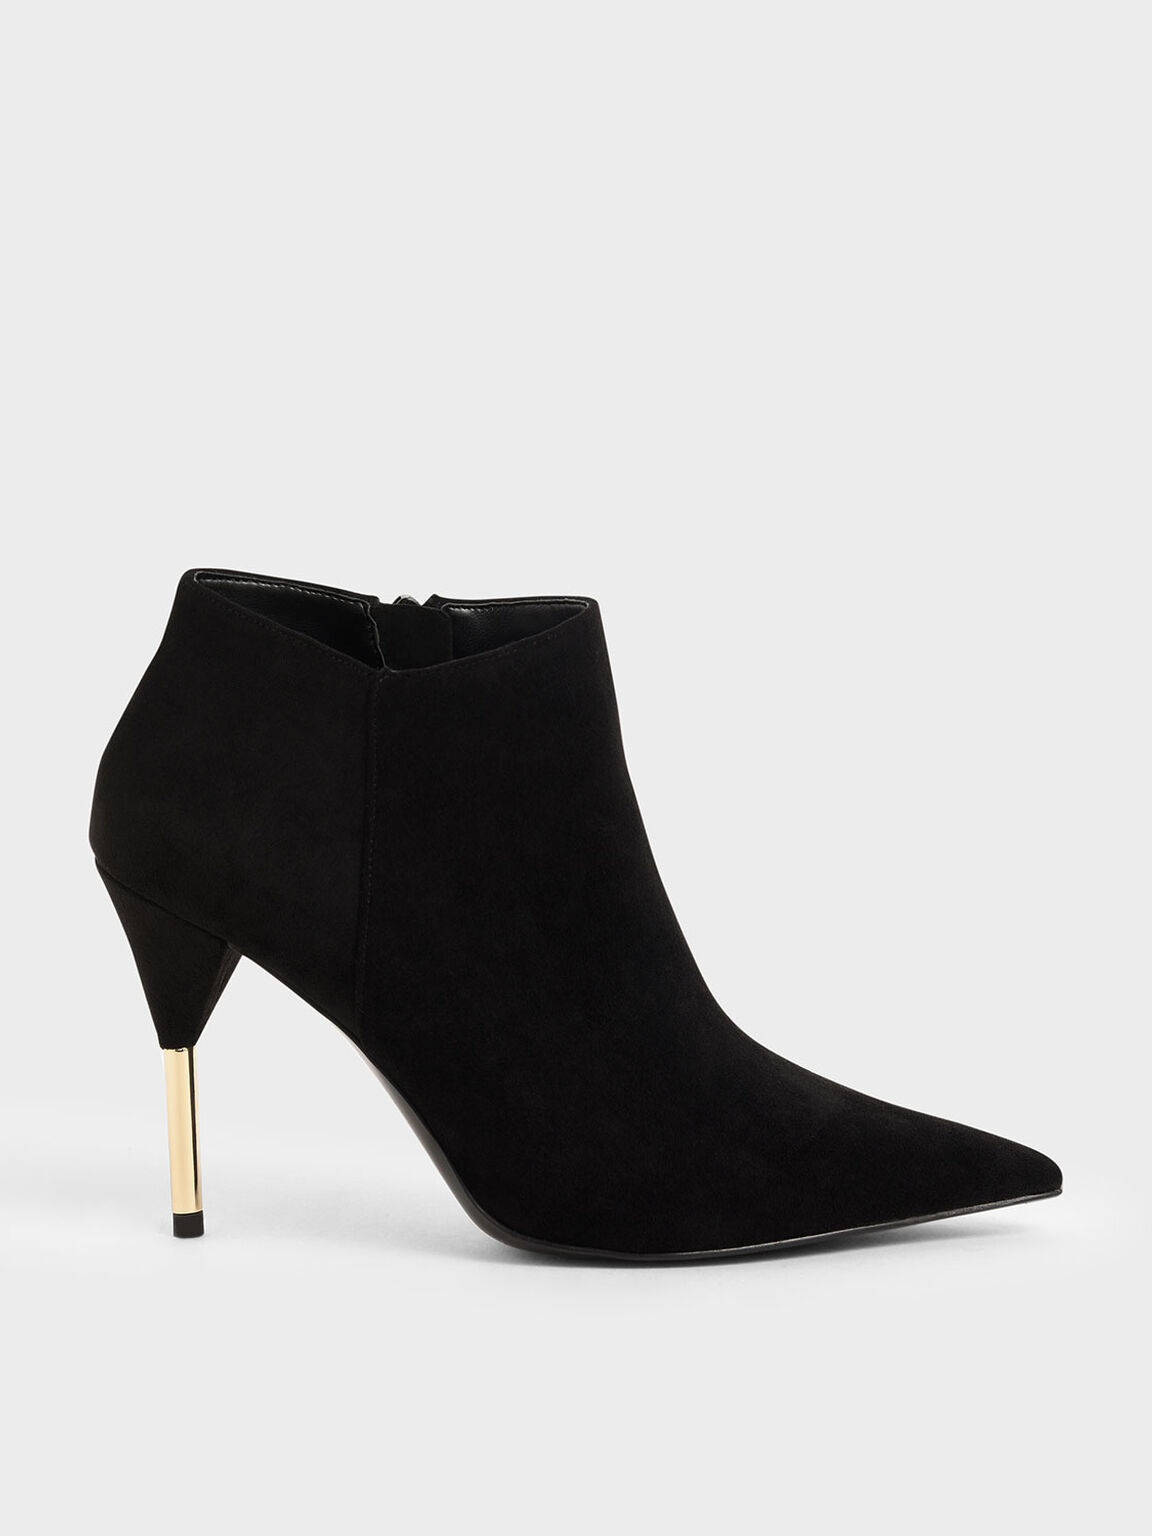 Metallic Stiletto Heel Ankle Boots, Black Textured, hi-res